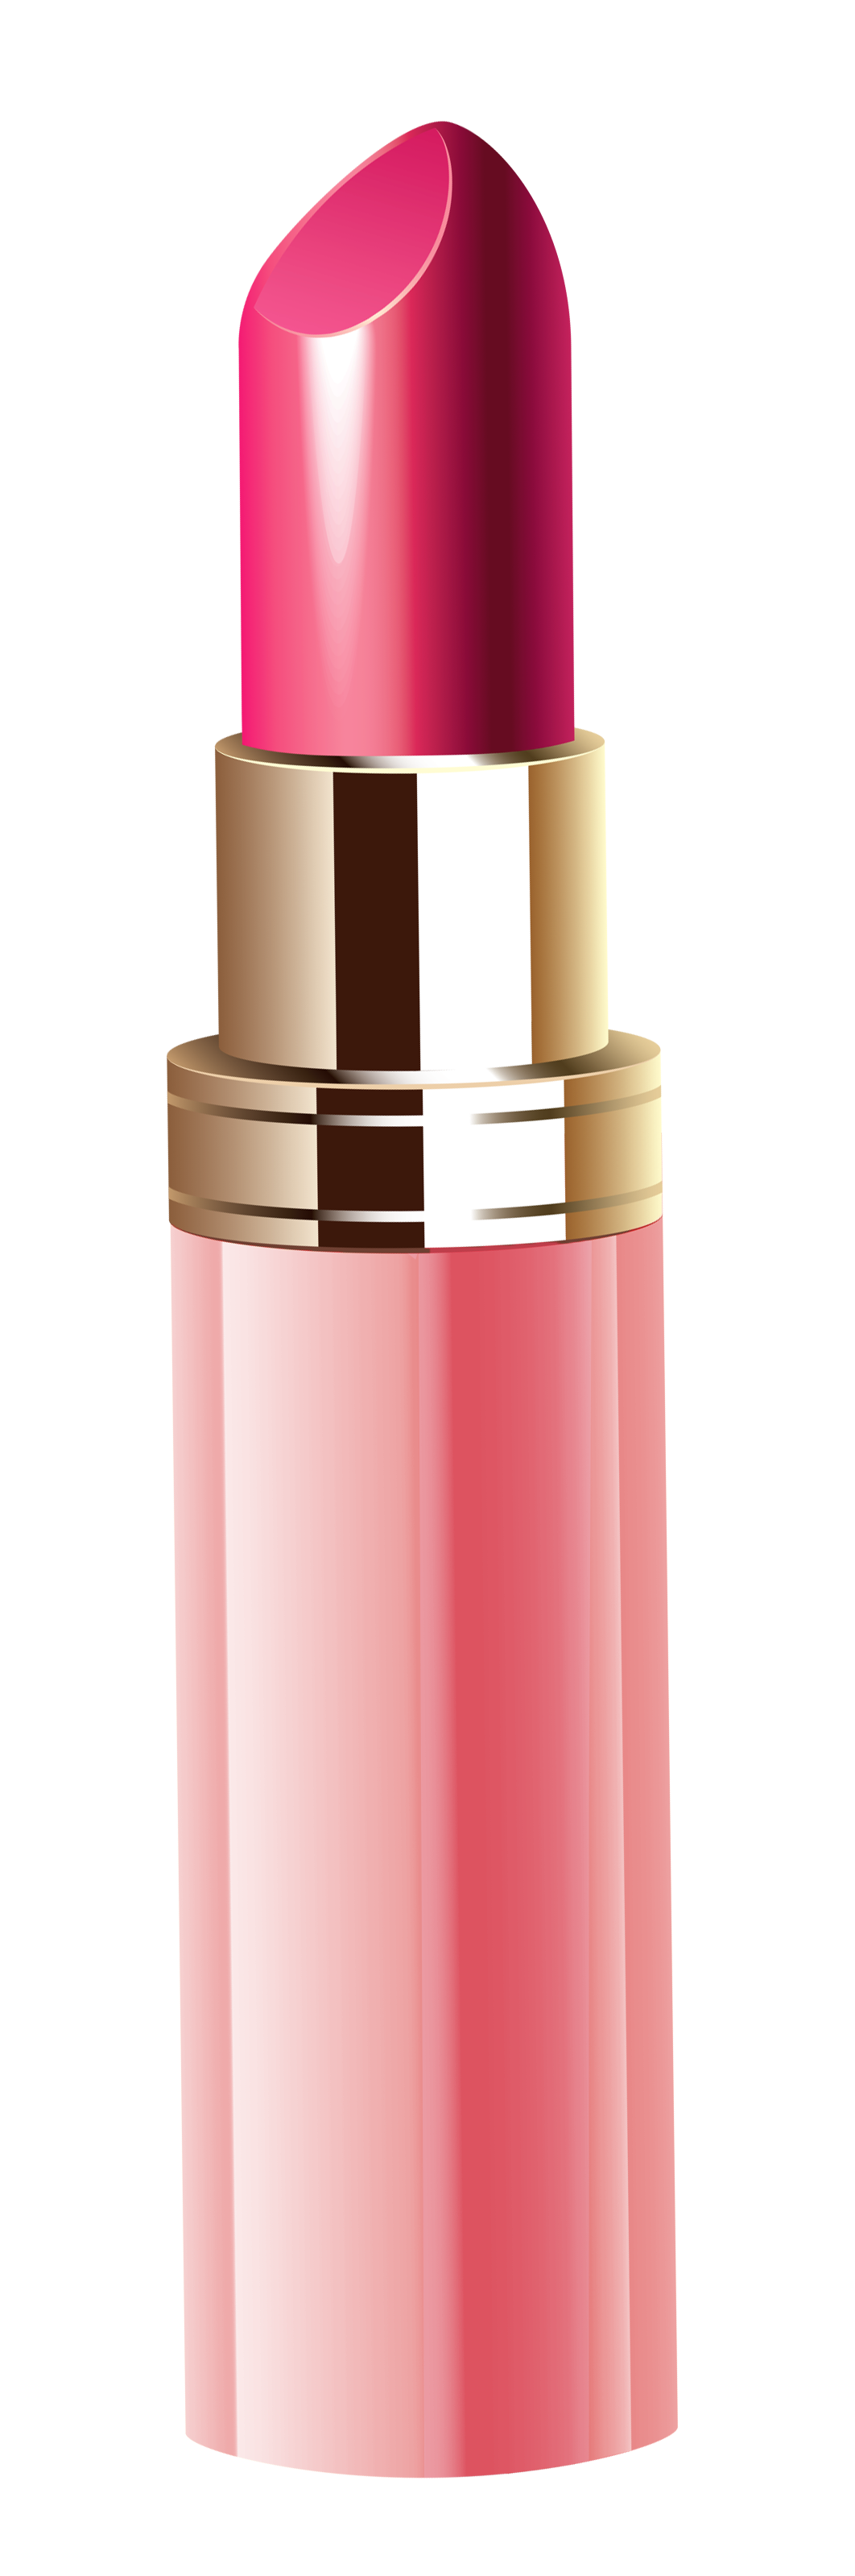 Free Lipstick Cliparts, Download Free Clip Art, Free Clip Art on.